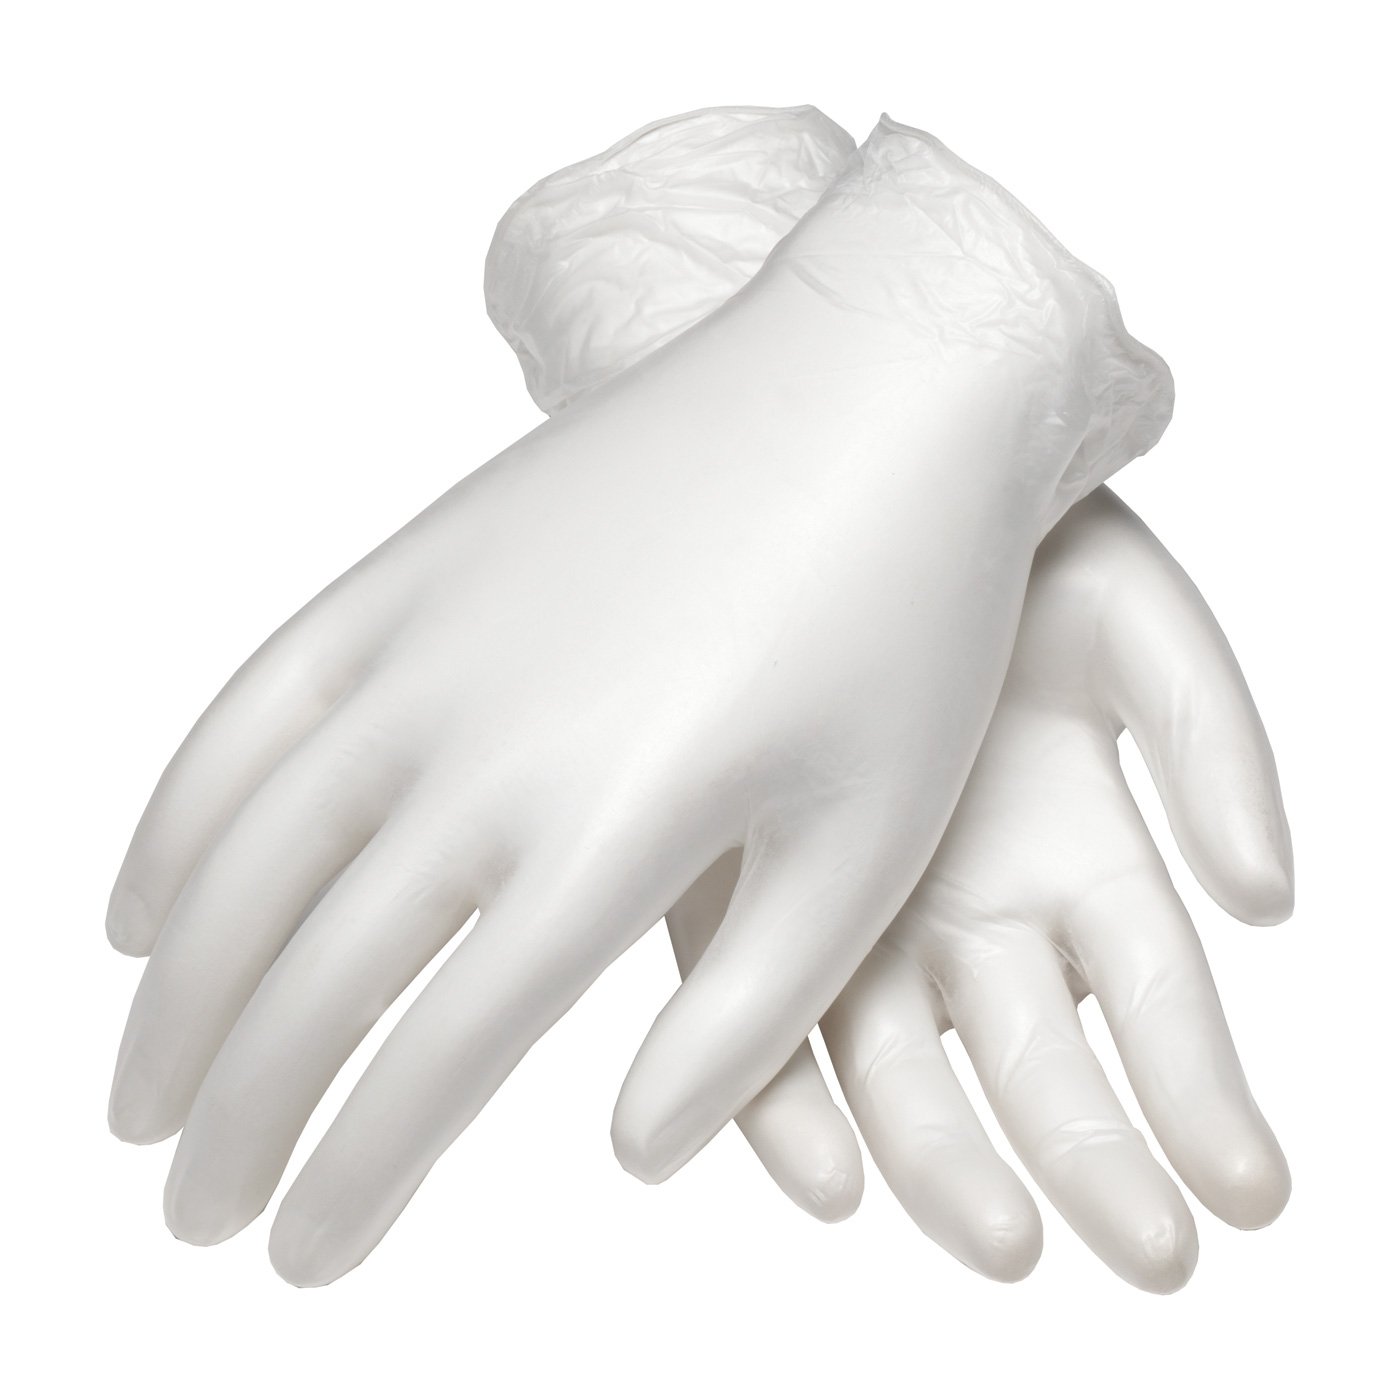 Liquid Cleanroom Gloves